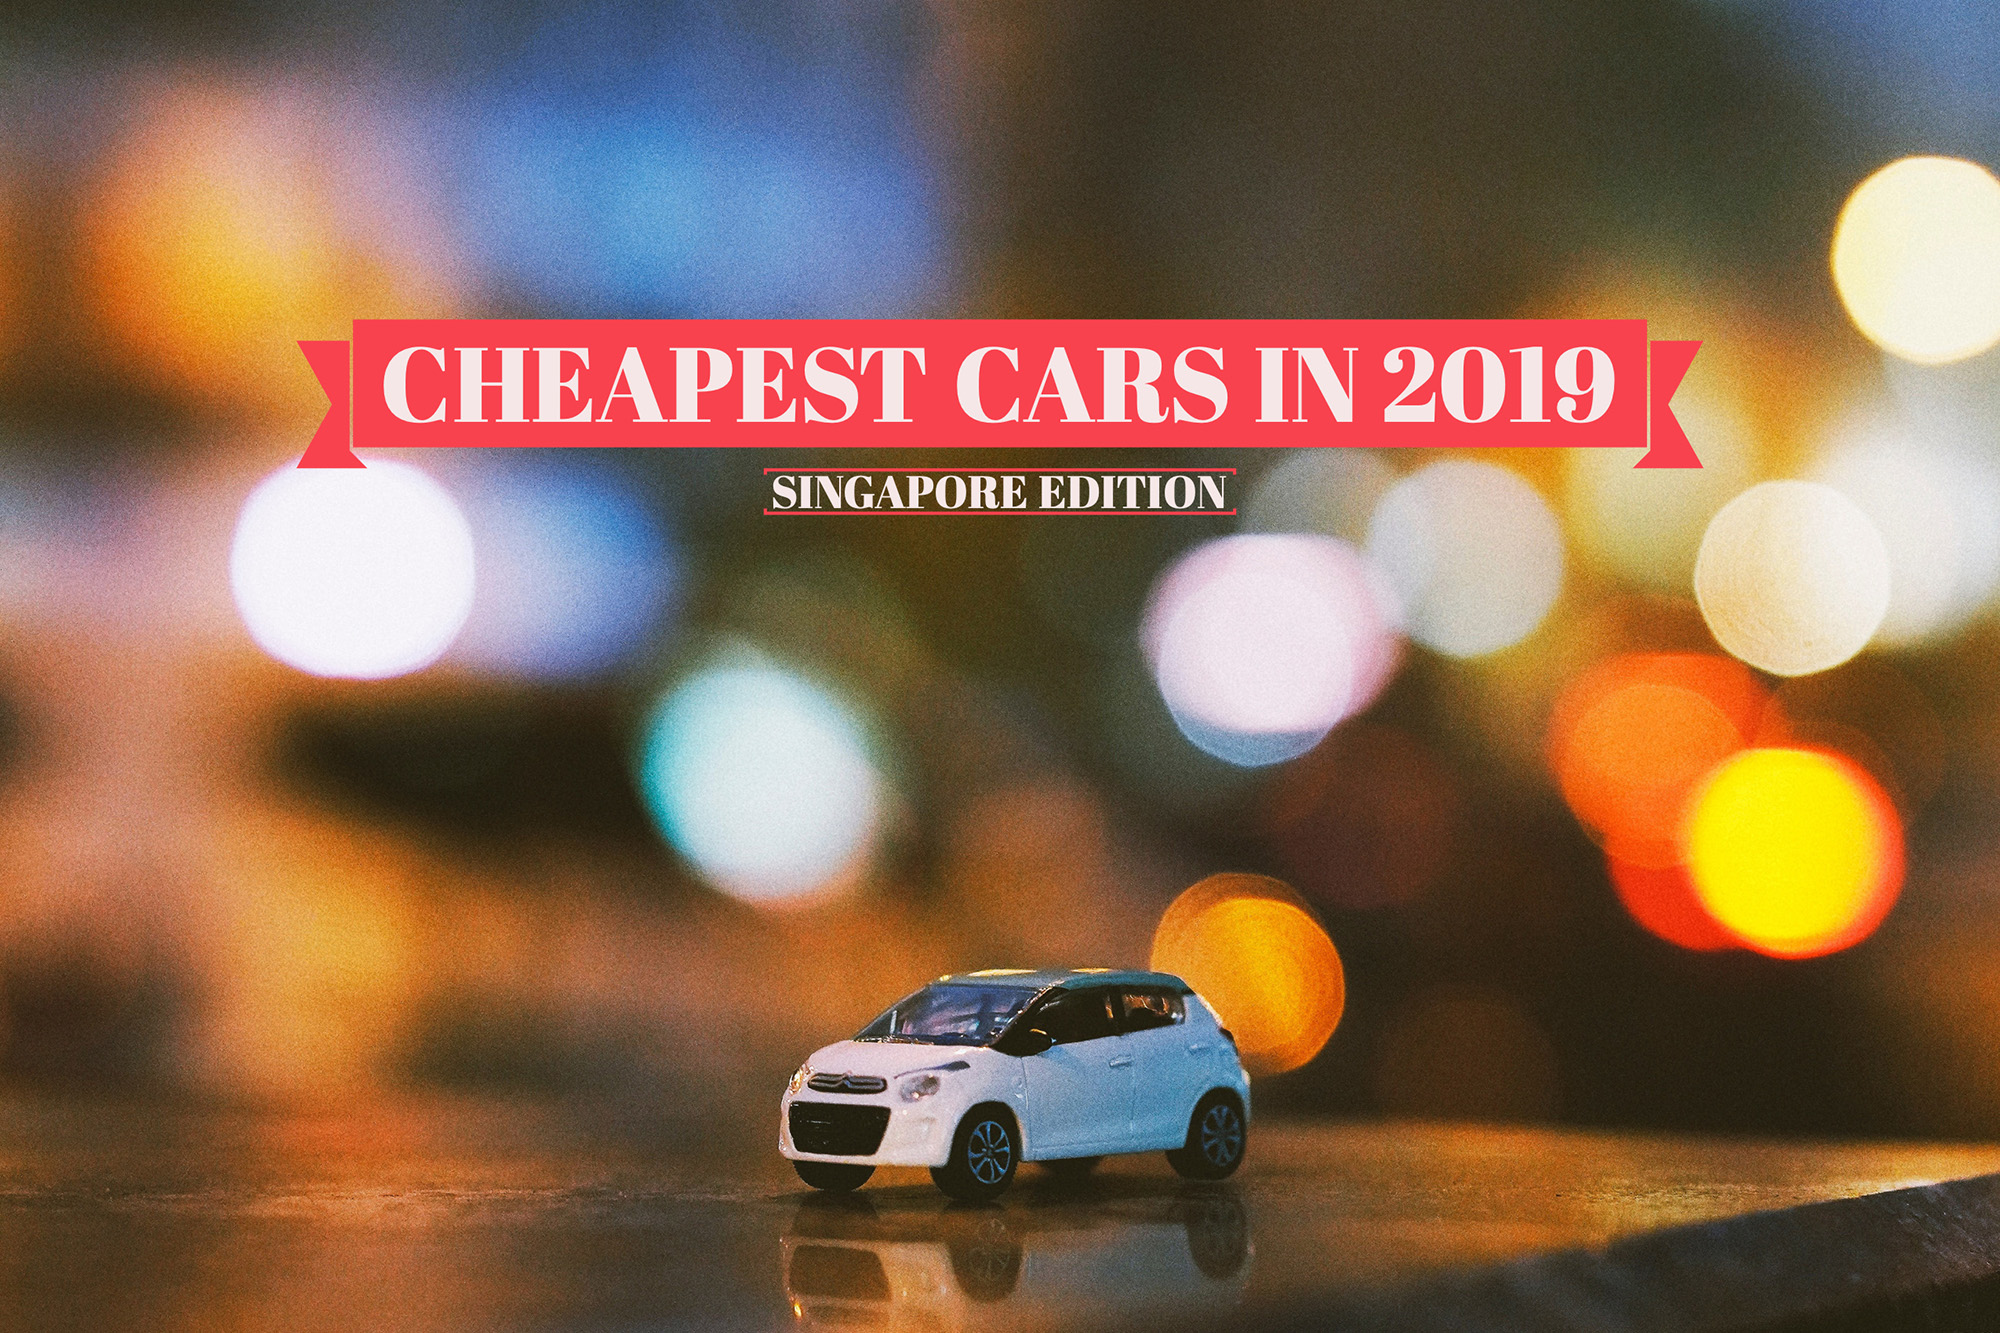 5 cheapest cars in singapore that you can buy in 2019